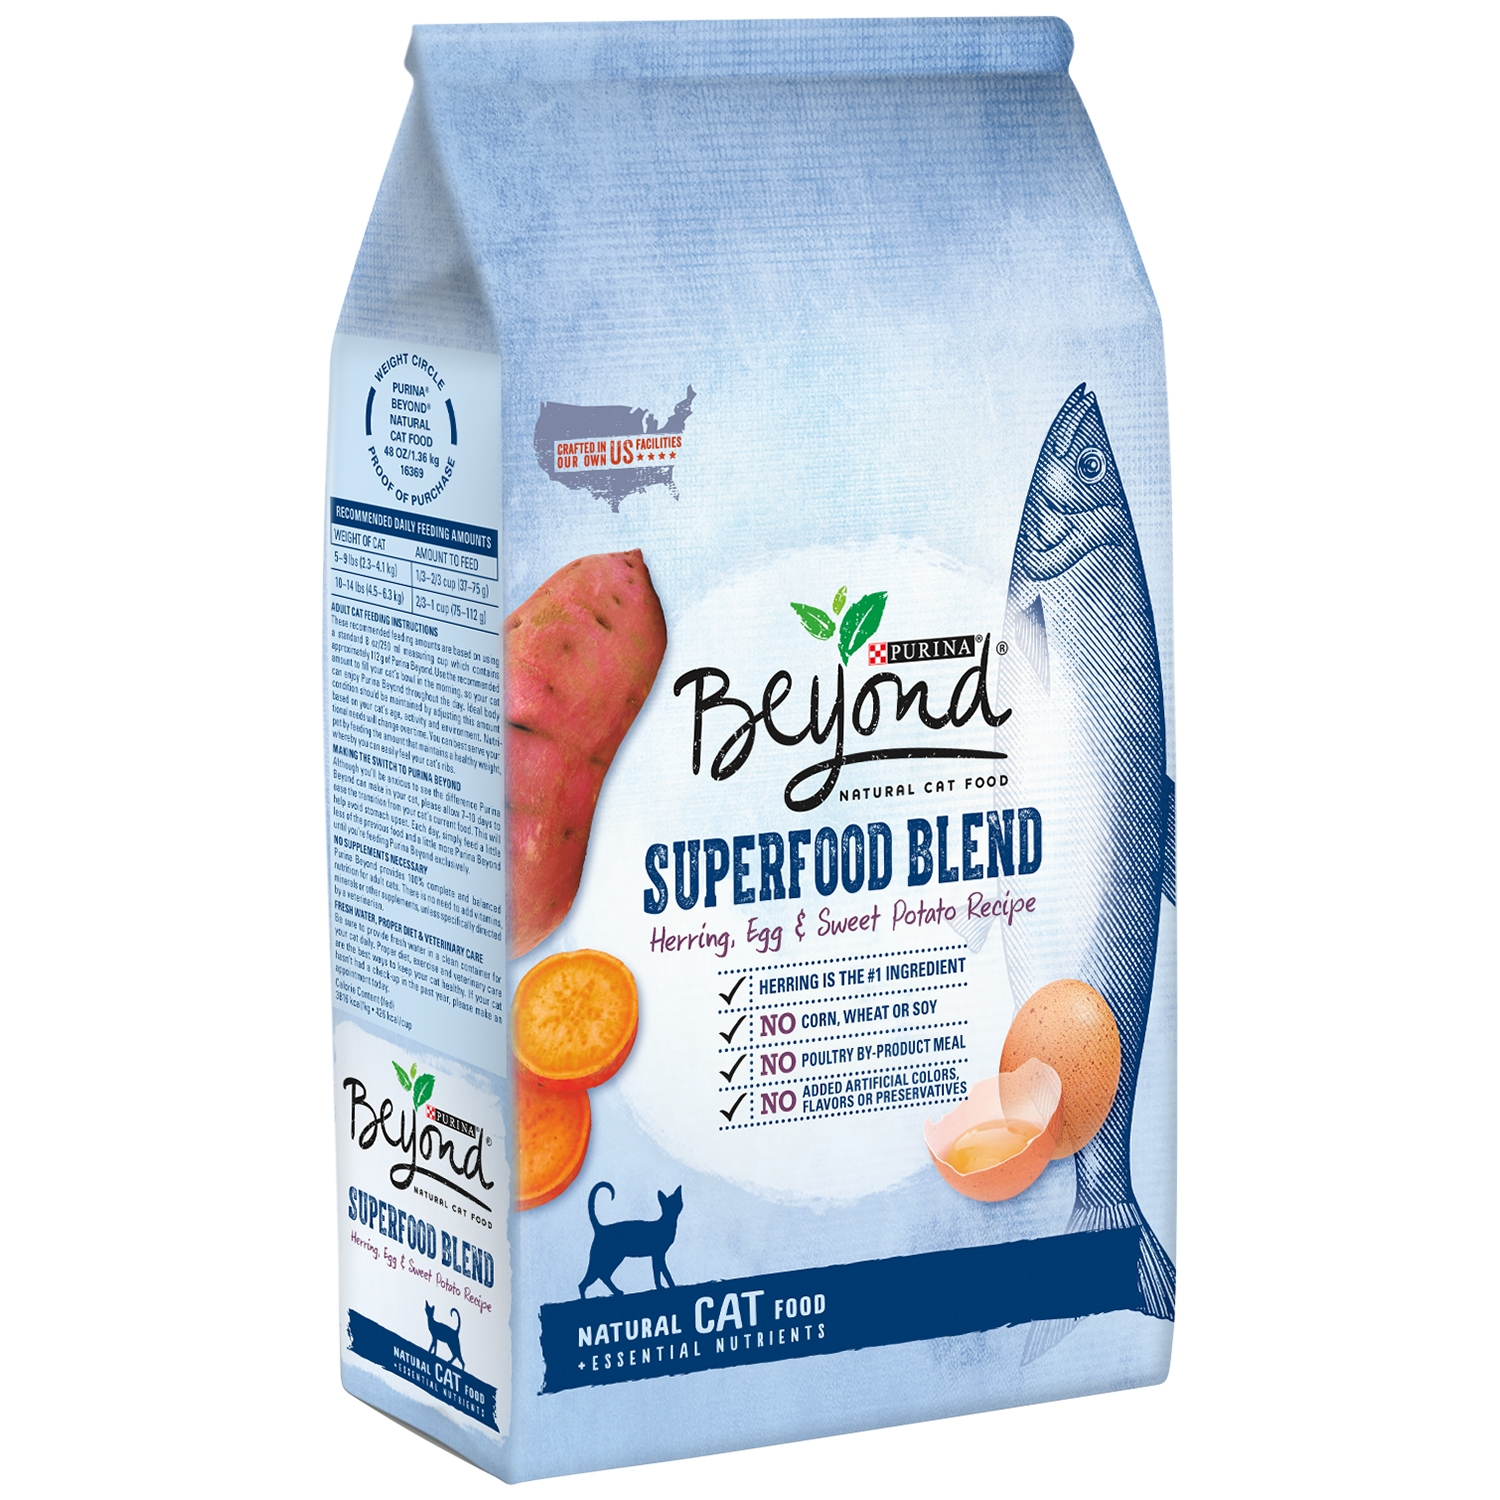 Purina beyond superfood, blend herring, egg & sweet potato recipe dry cat food, 3 lb